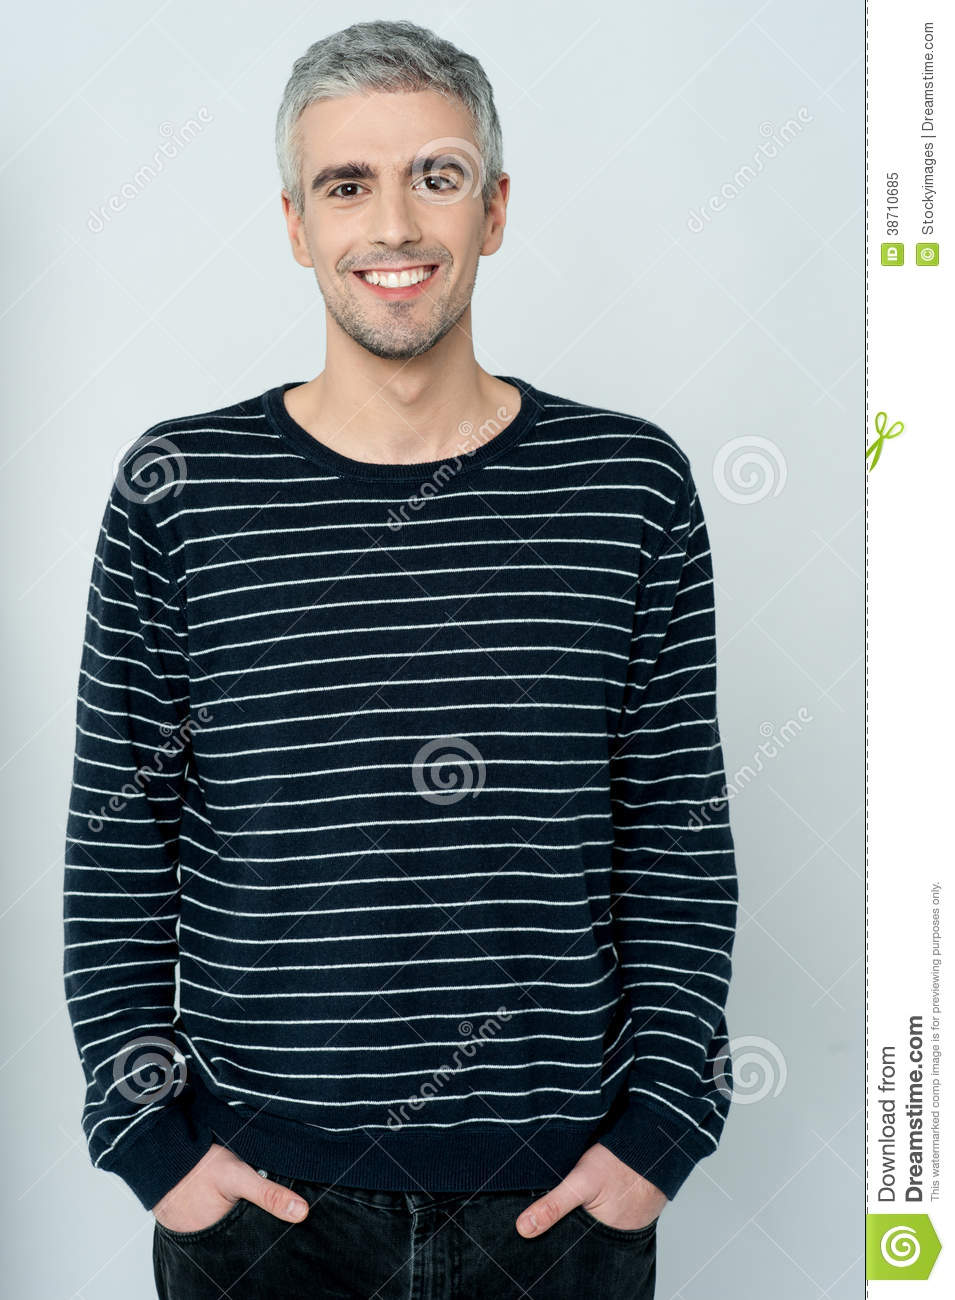 Aged happy smiling casual man